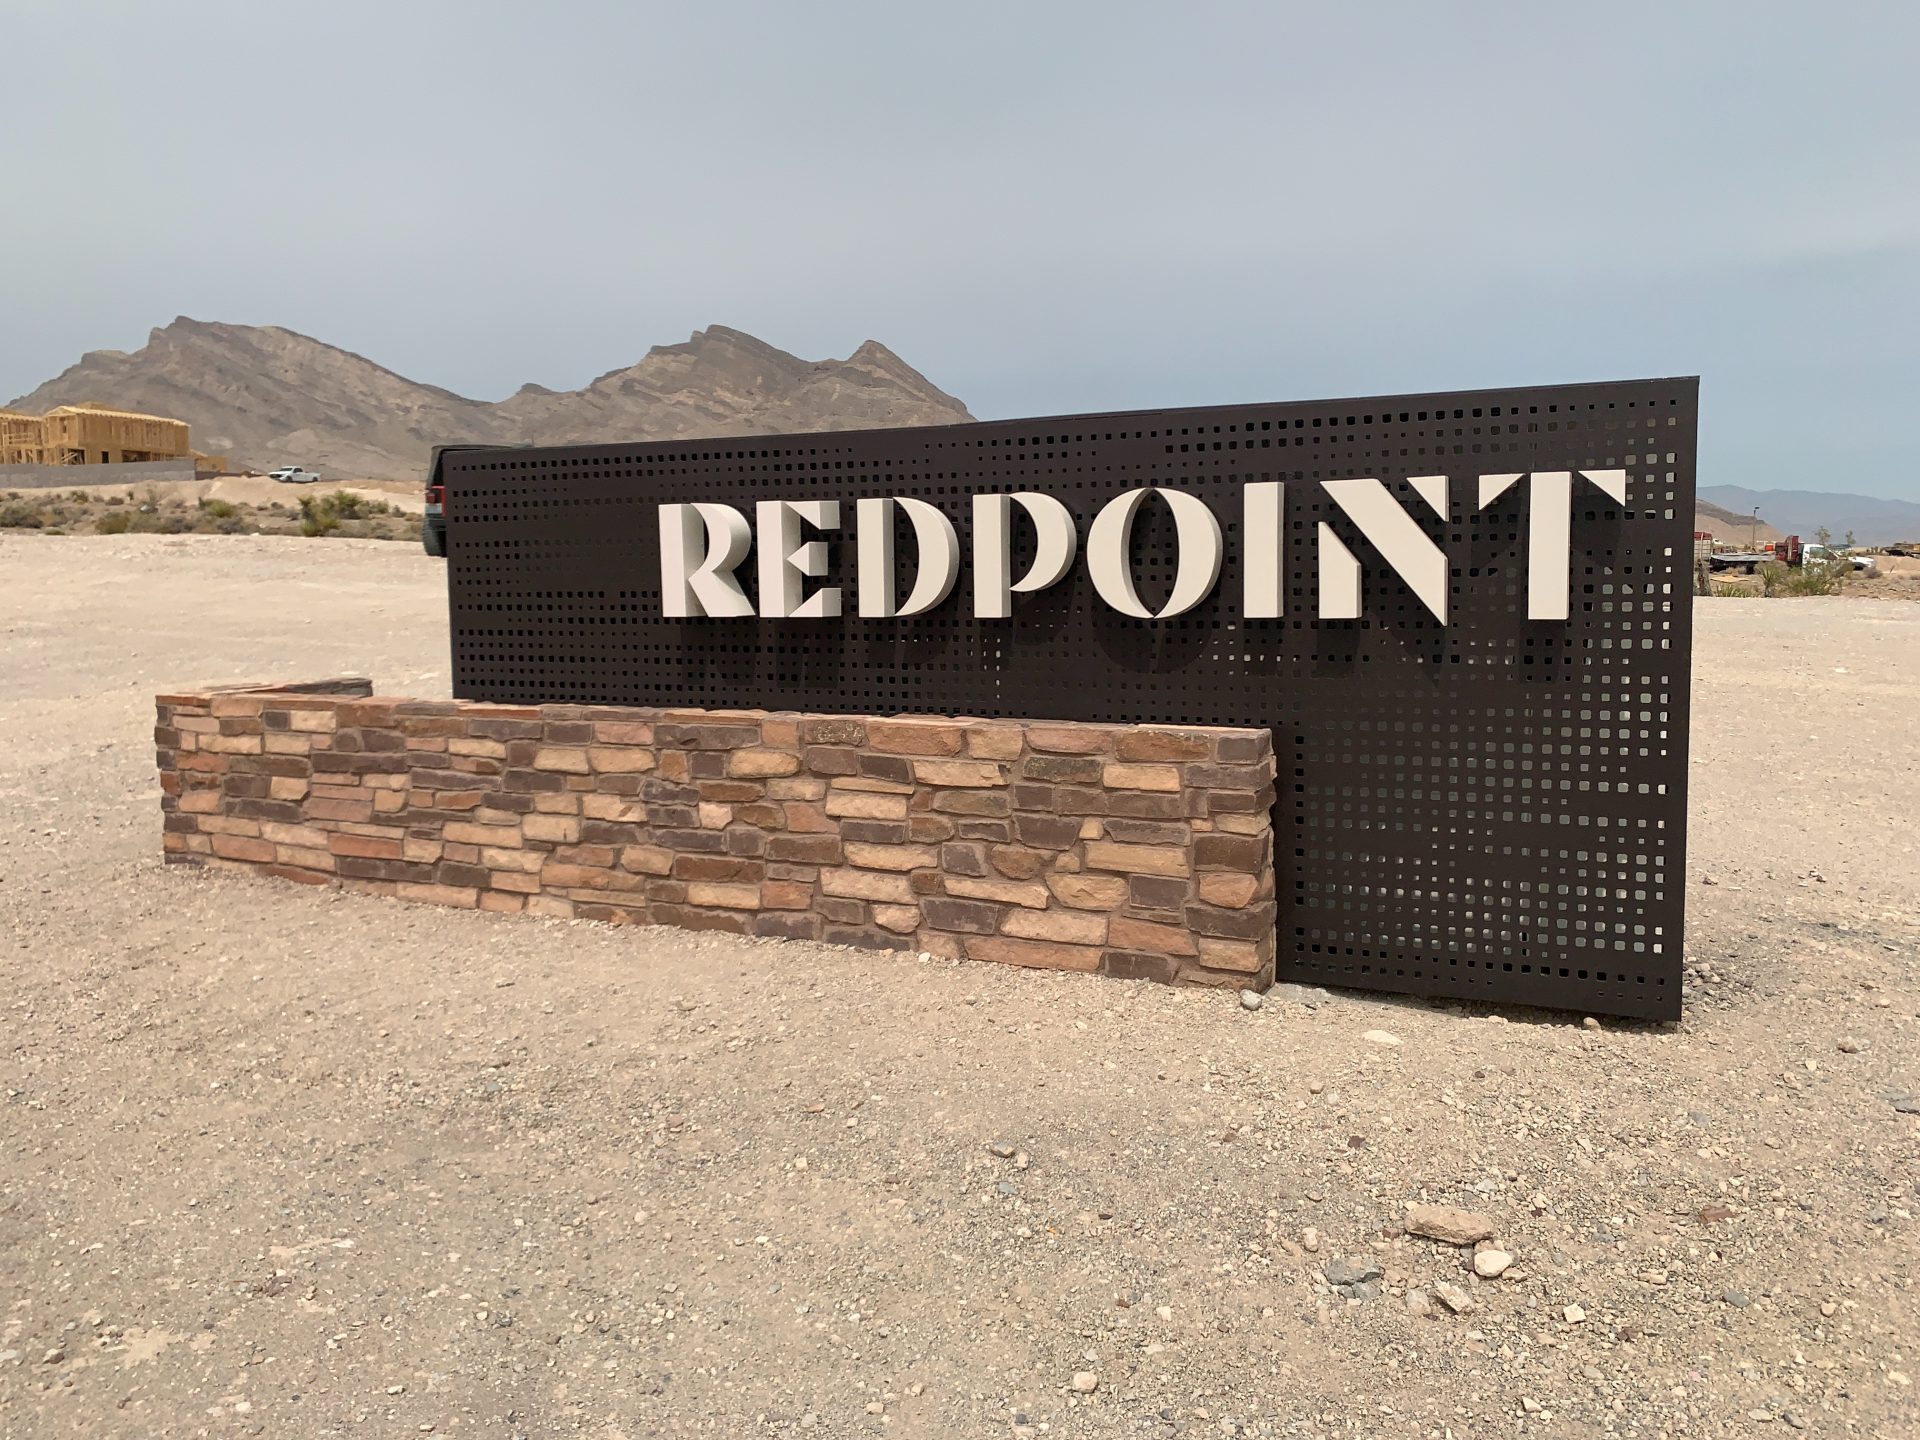 Redpoint Village